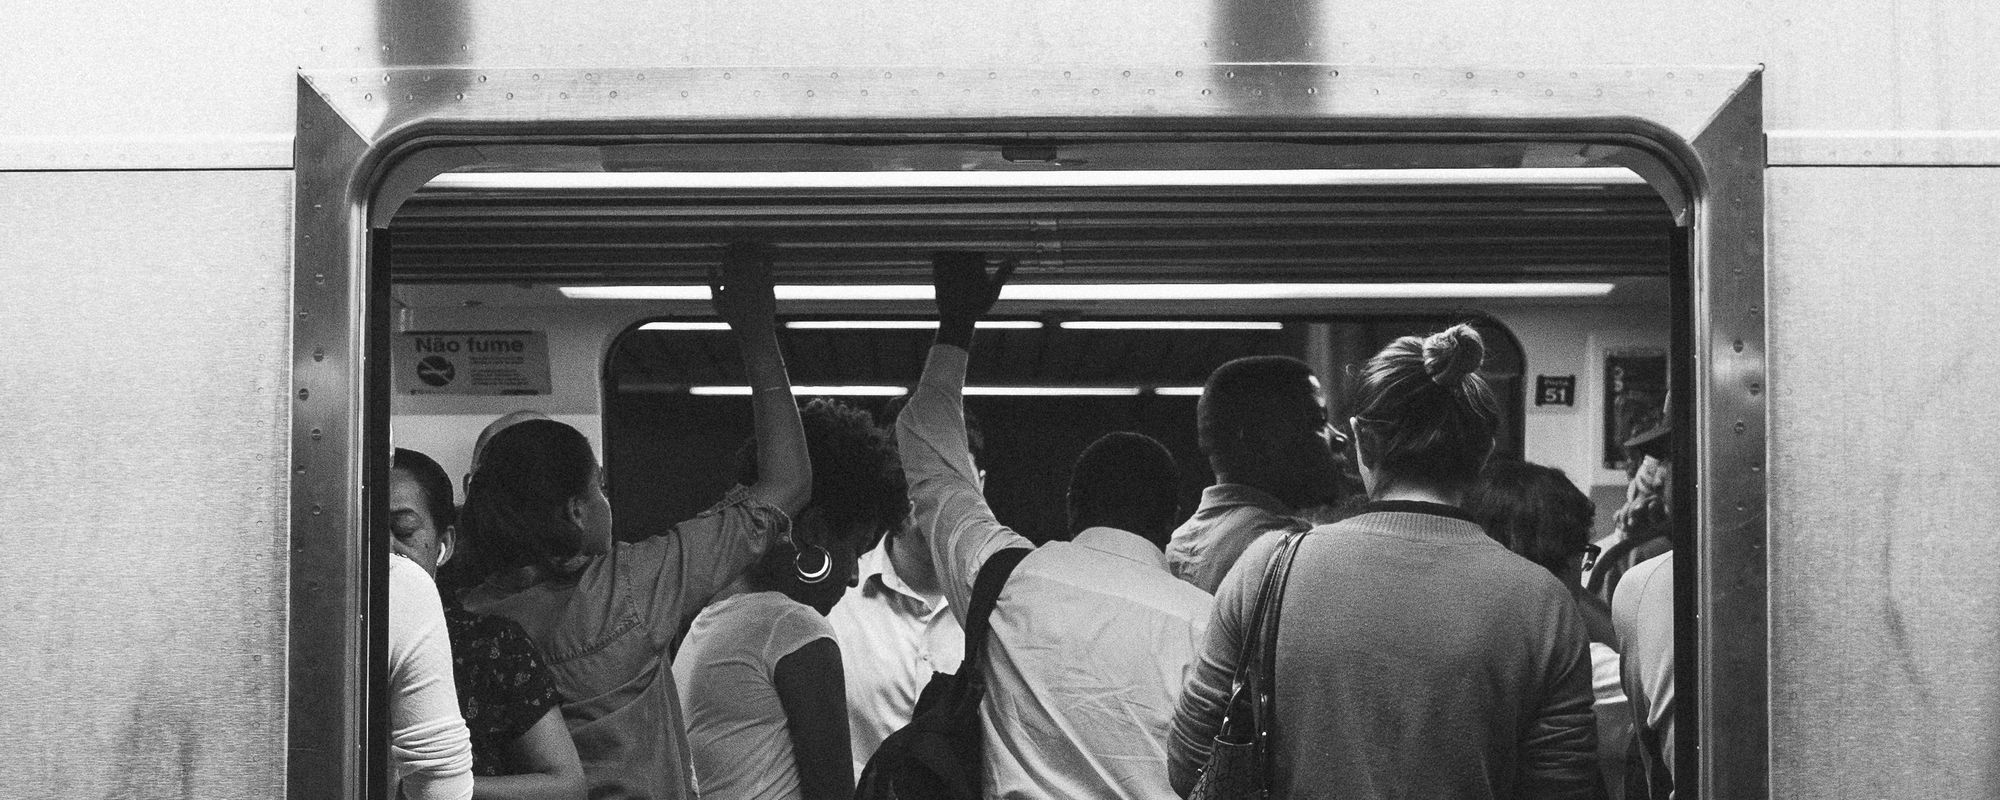 People crowding in a subway car